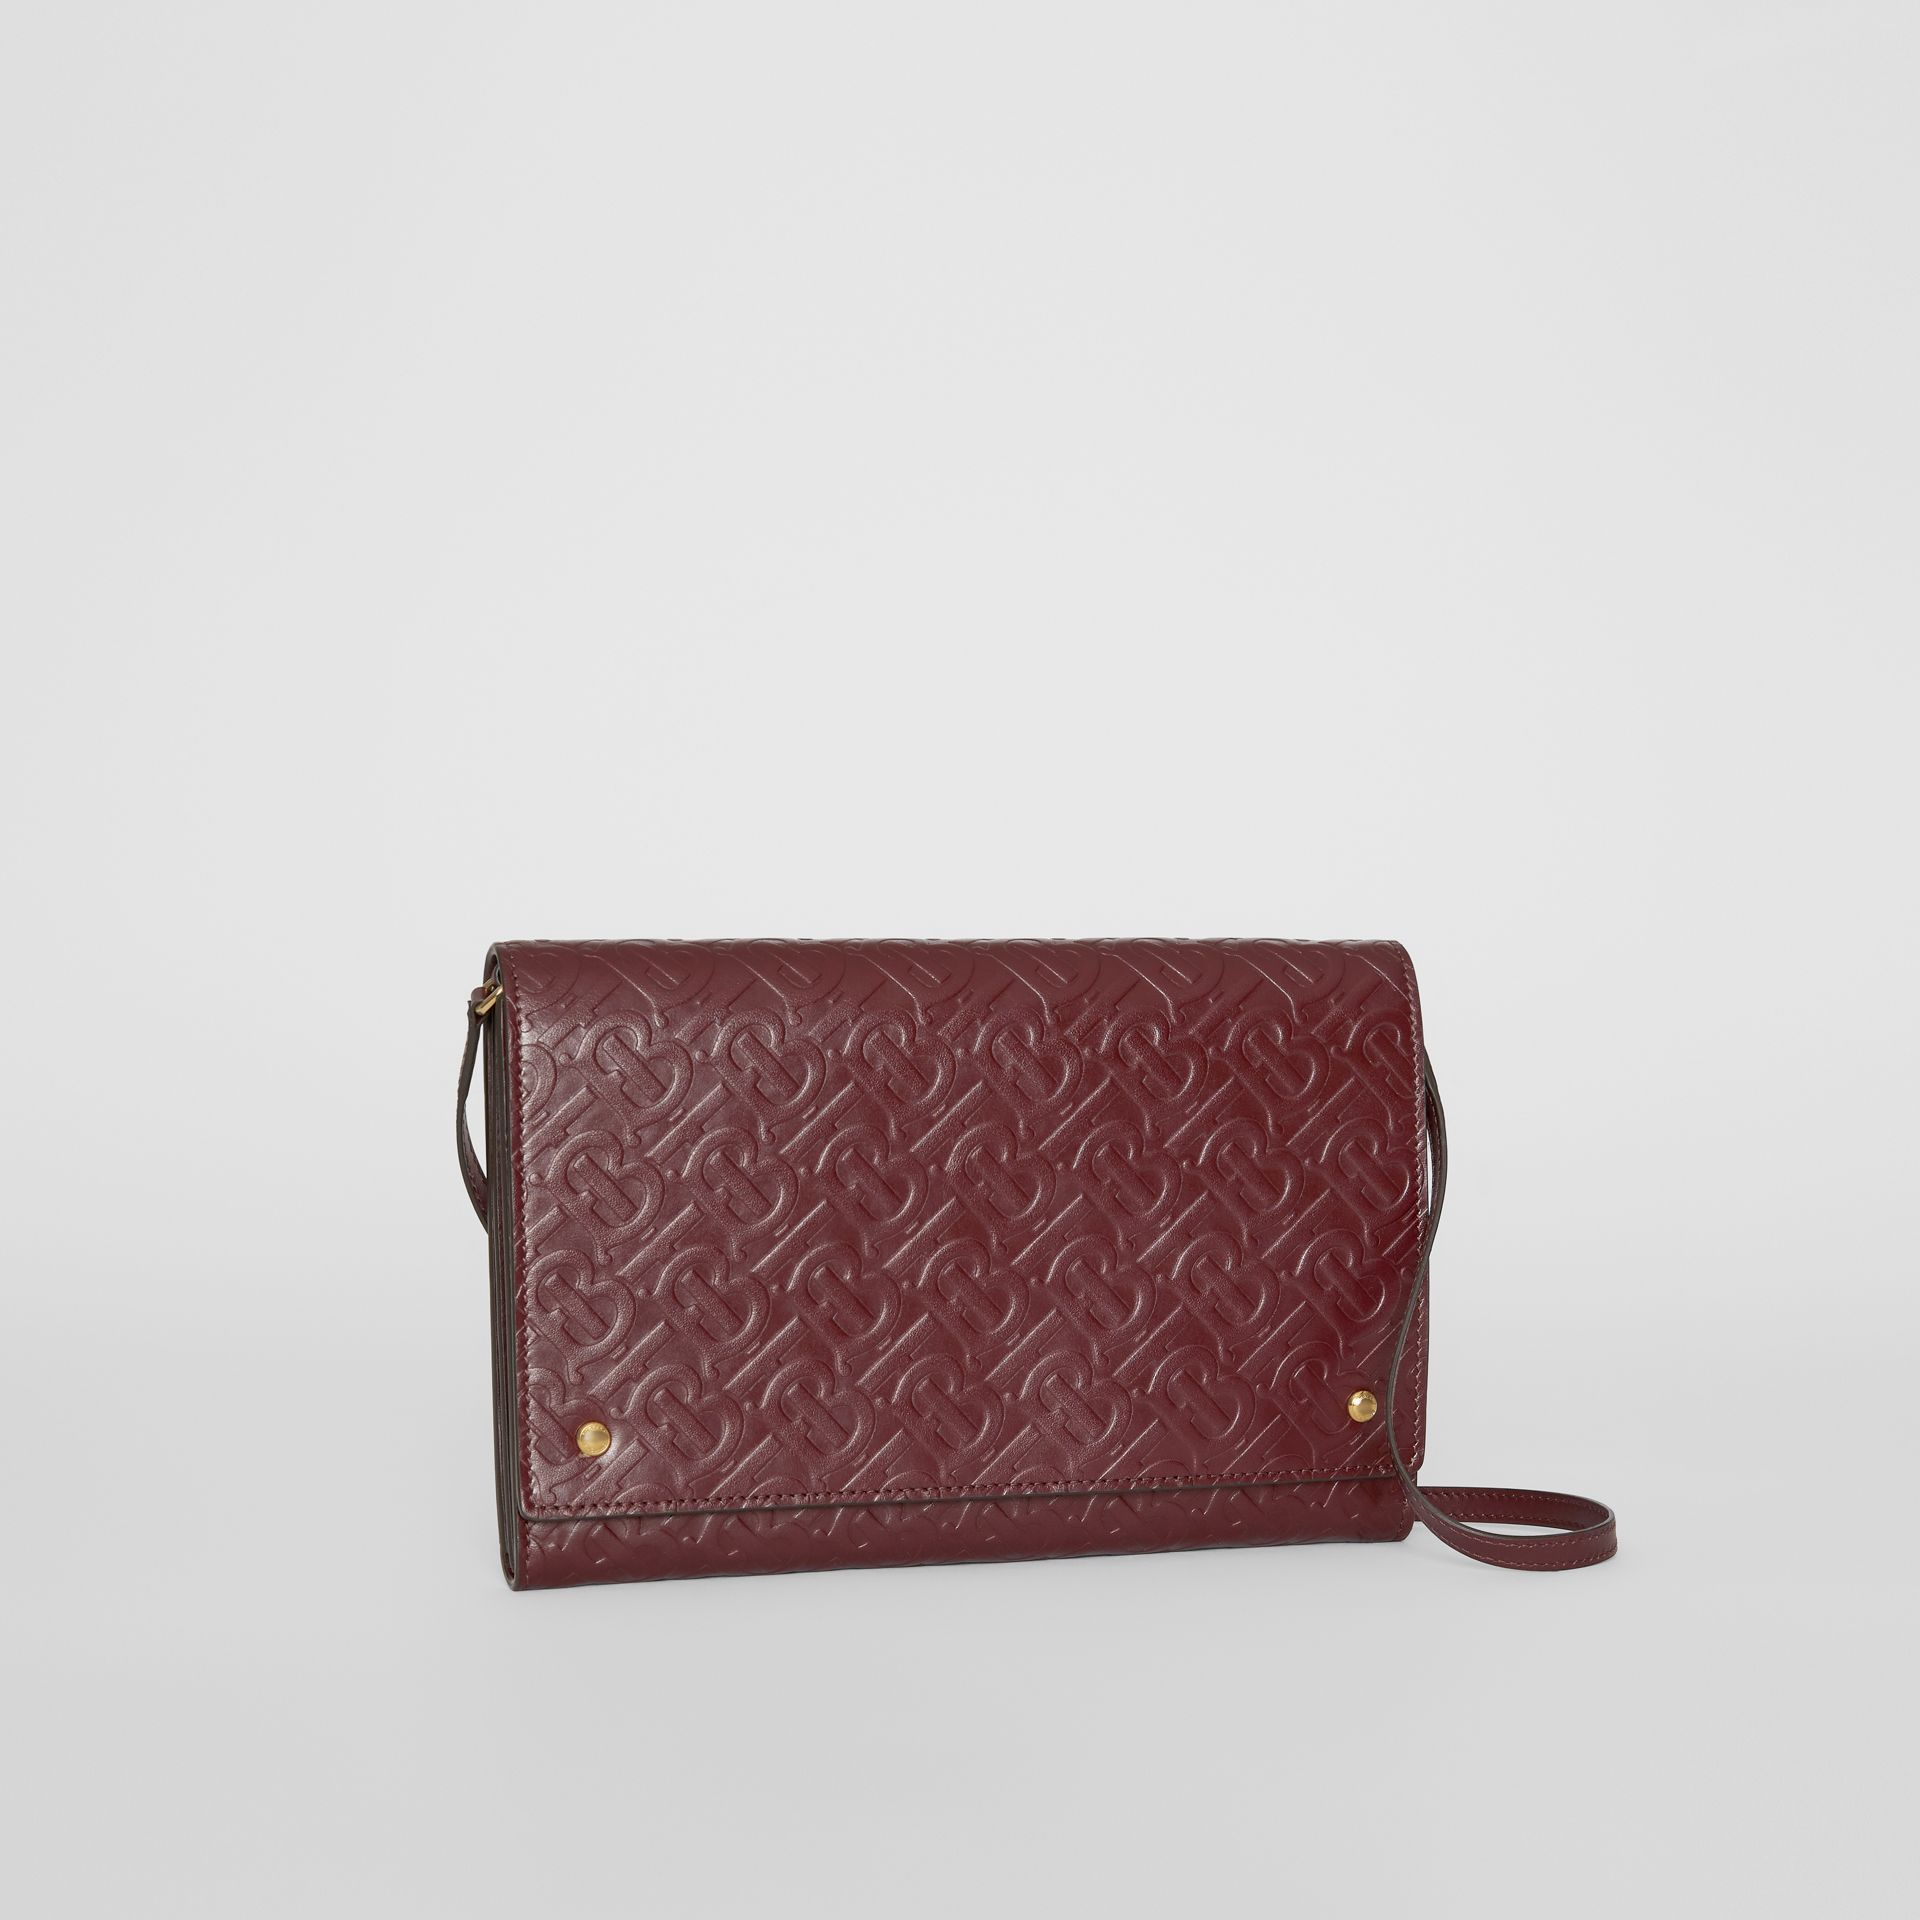 Monogram Leather Bag with Detachable Strap in Oxblood - Women | Burberry Australia - gallery image 4